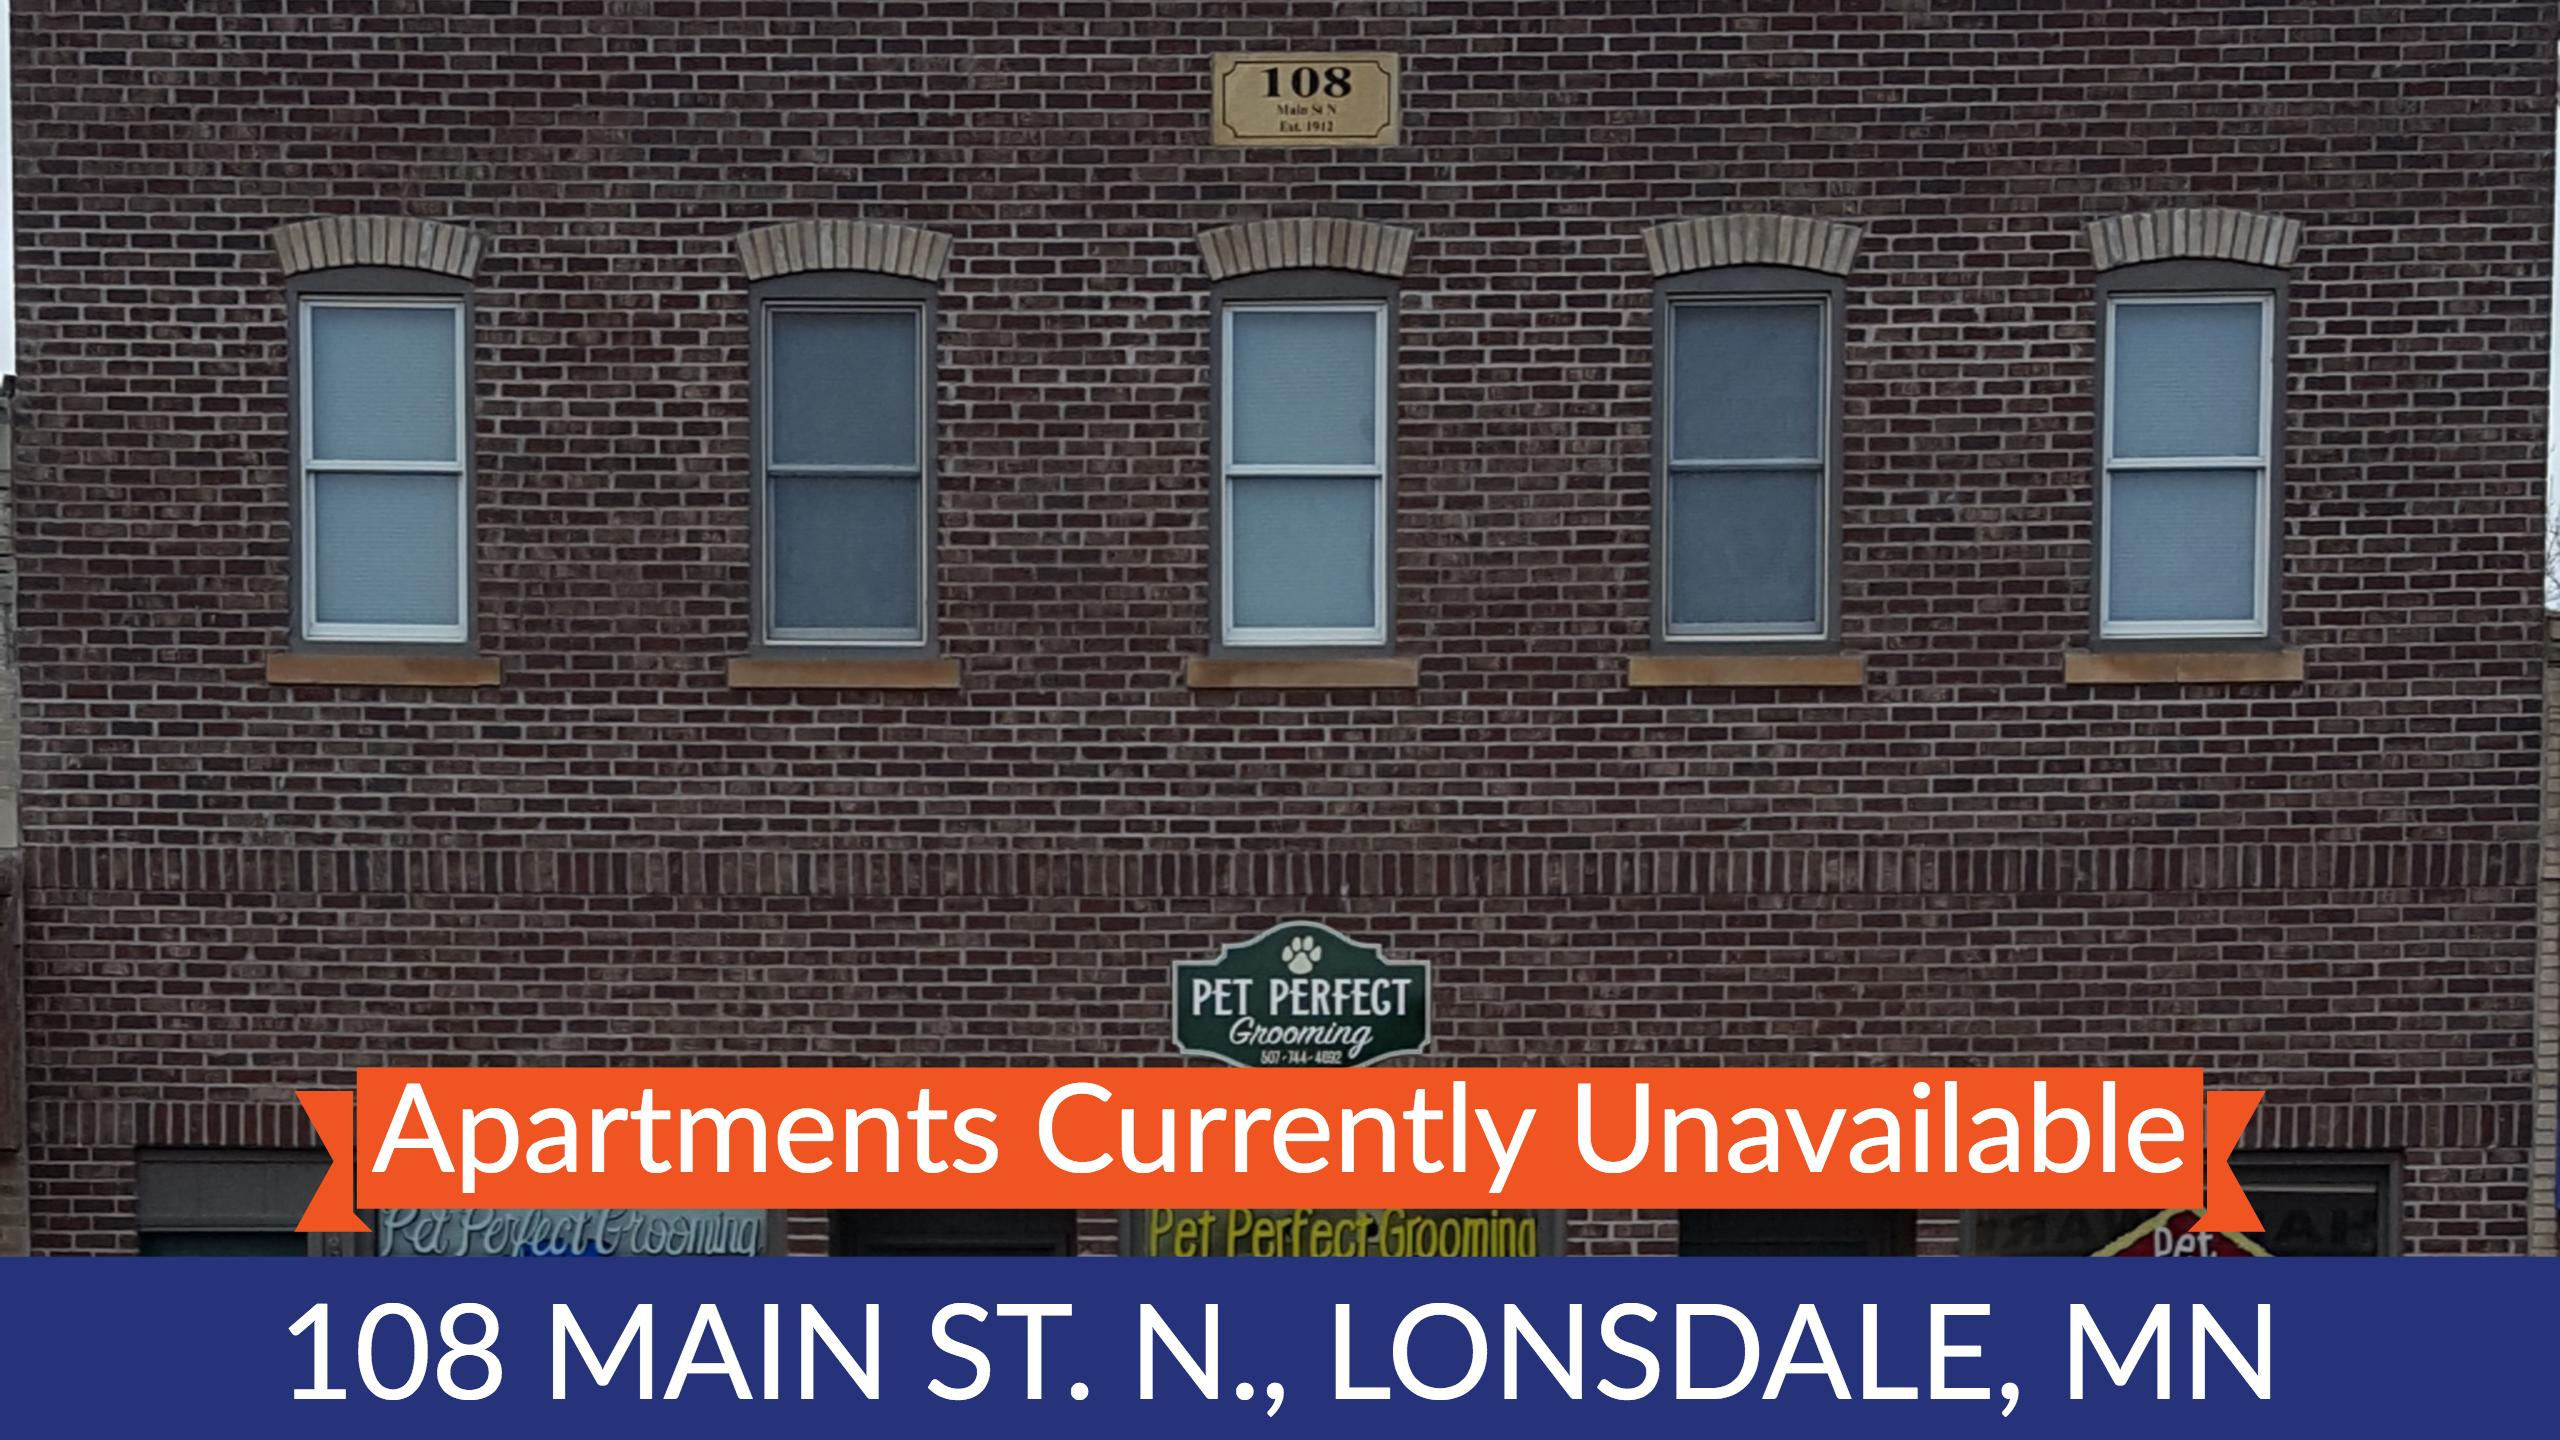 108 Apartments Unavailable